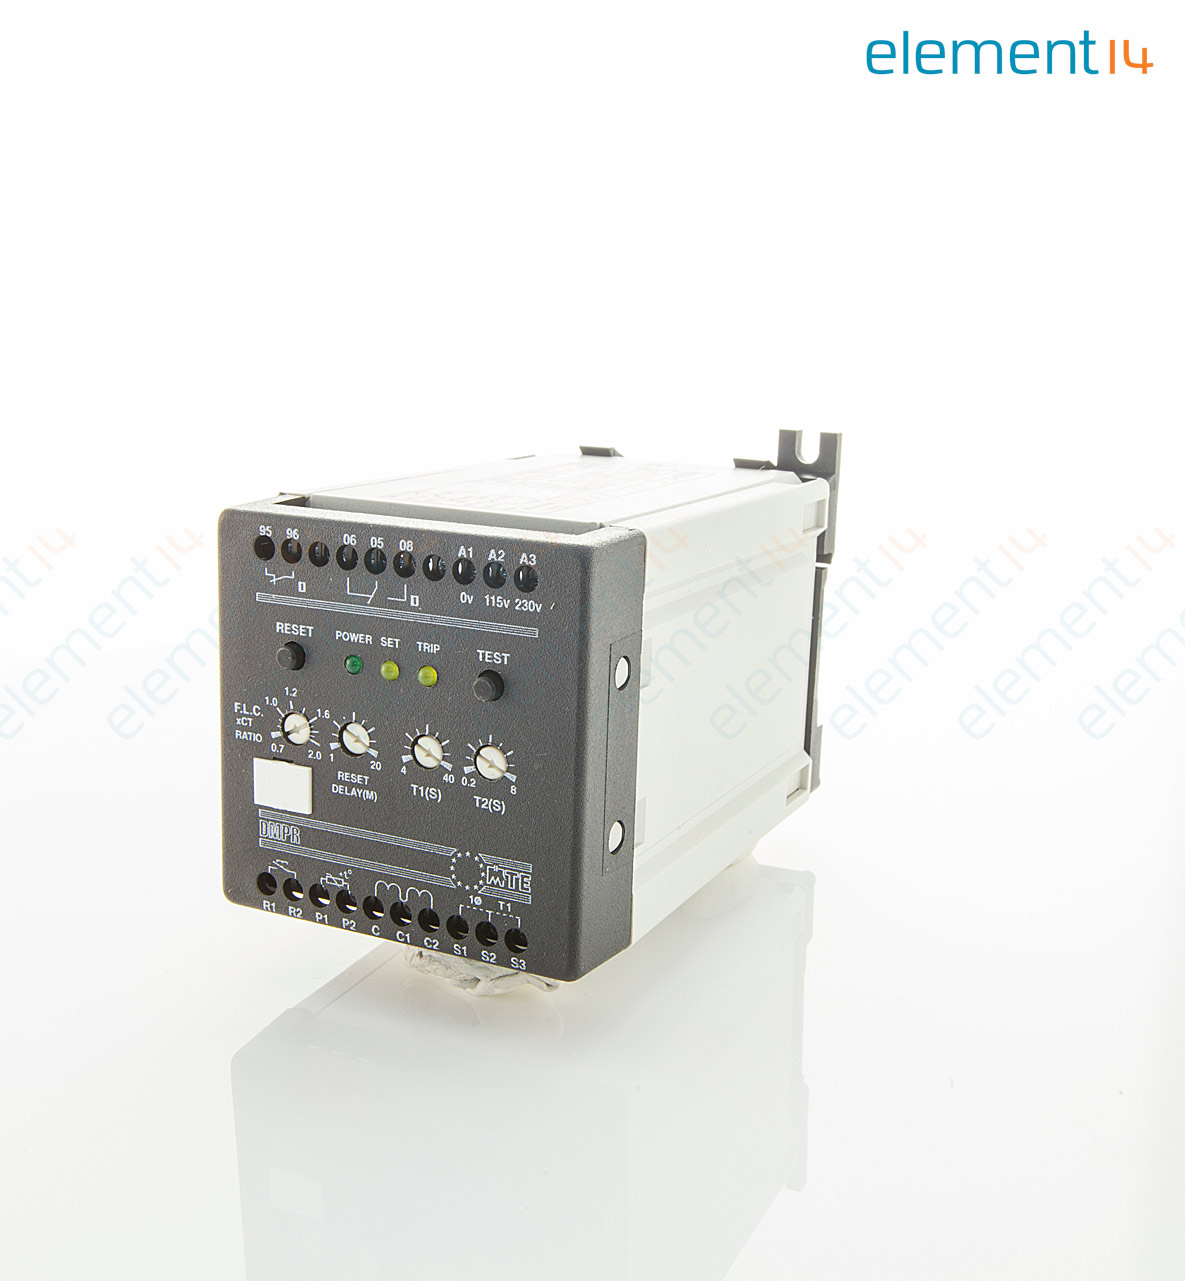 Dmpr230s000 Mte Motor Protection Relay Electronic Dmpr Series High Low Voltage Cutoff With Delay Alarm Circuits 115 230 Vac 5 A 240 V